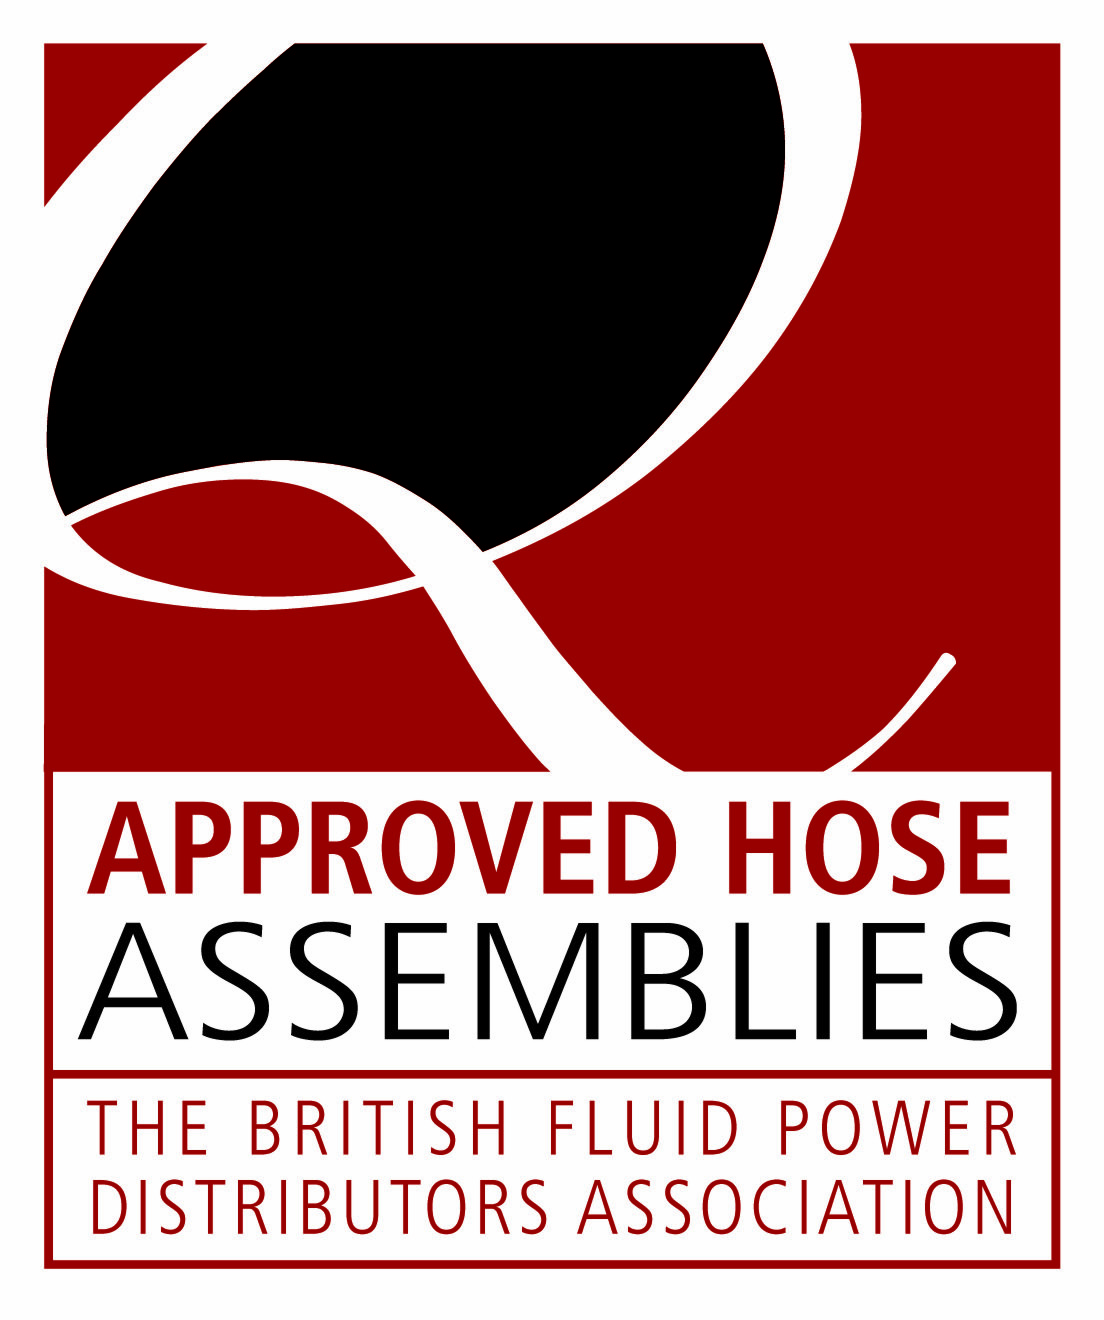 Hydraulic Equipment Supermarkets are Q Approved Hydraulic Hose suppliers